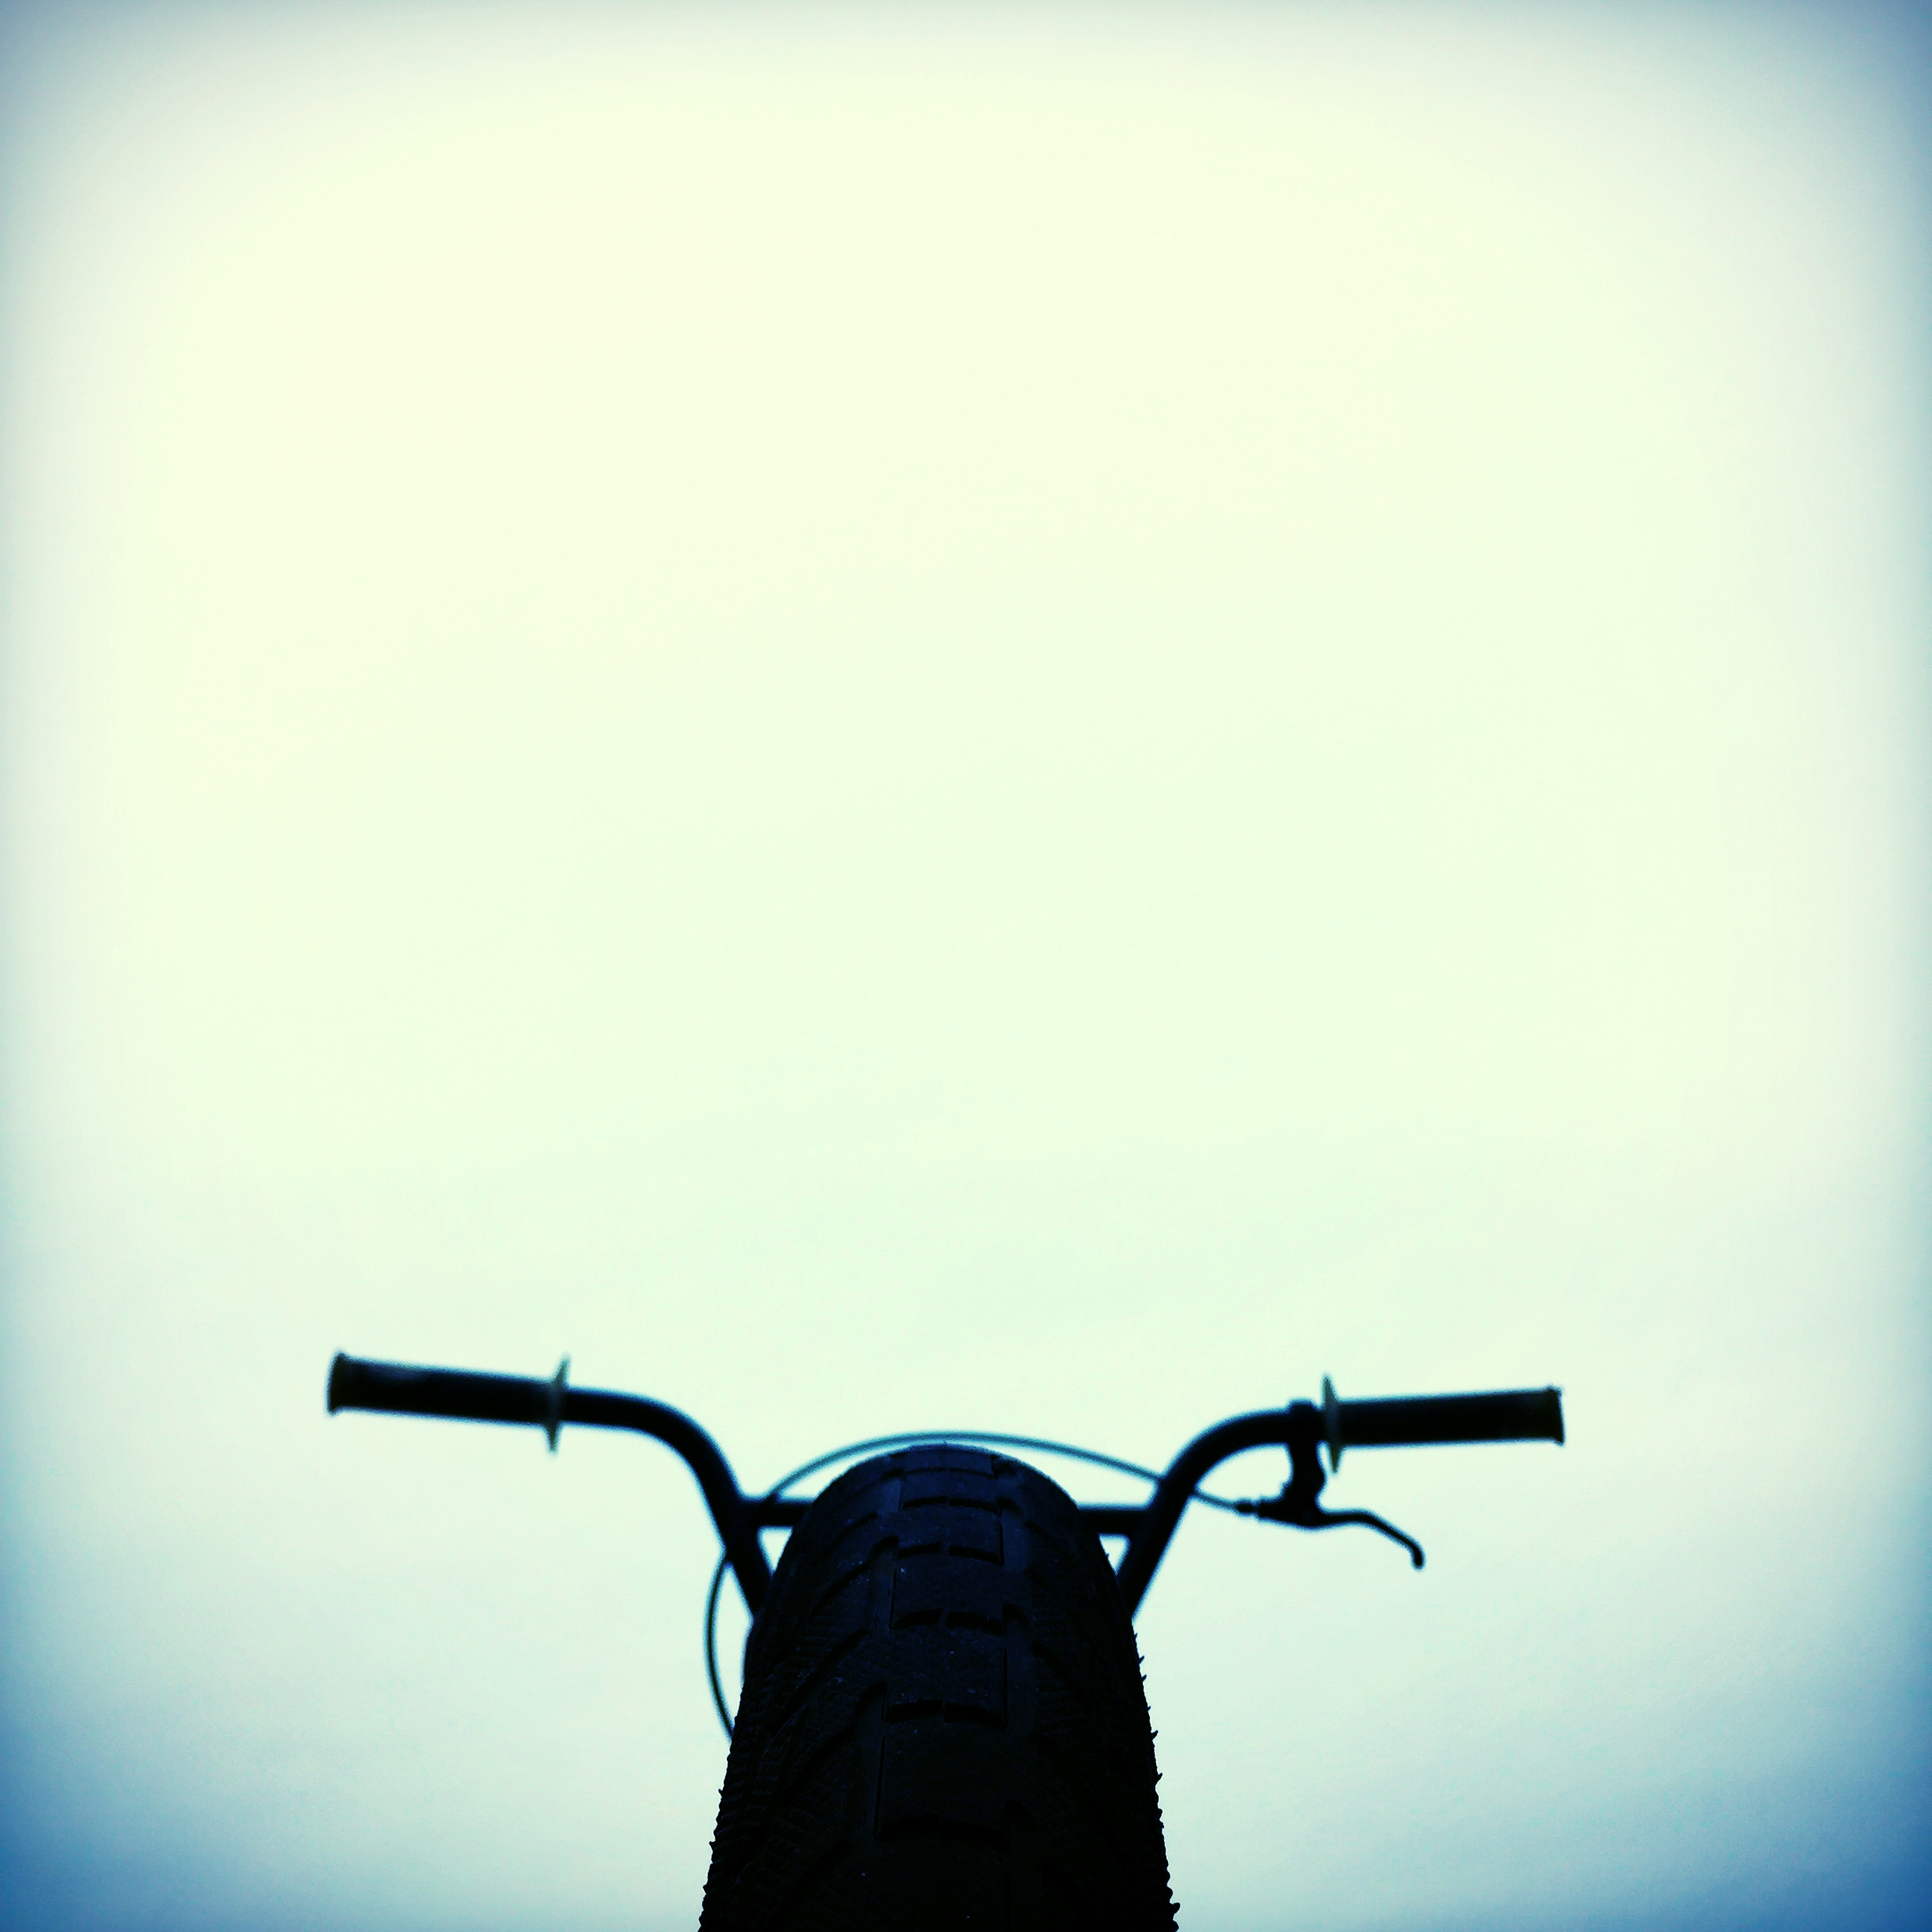 Bike on the roof